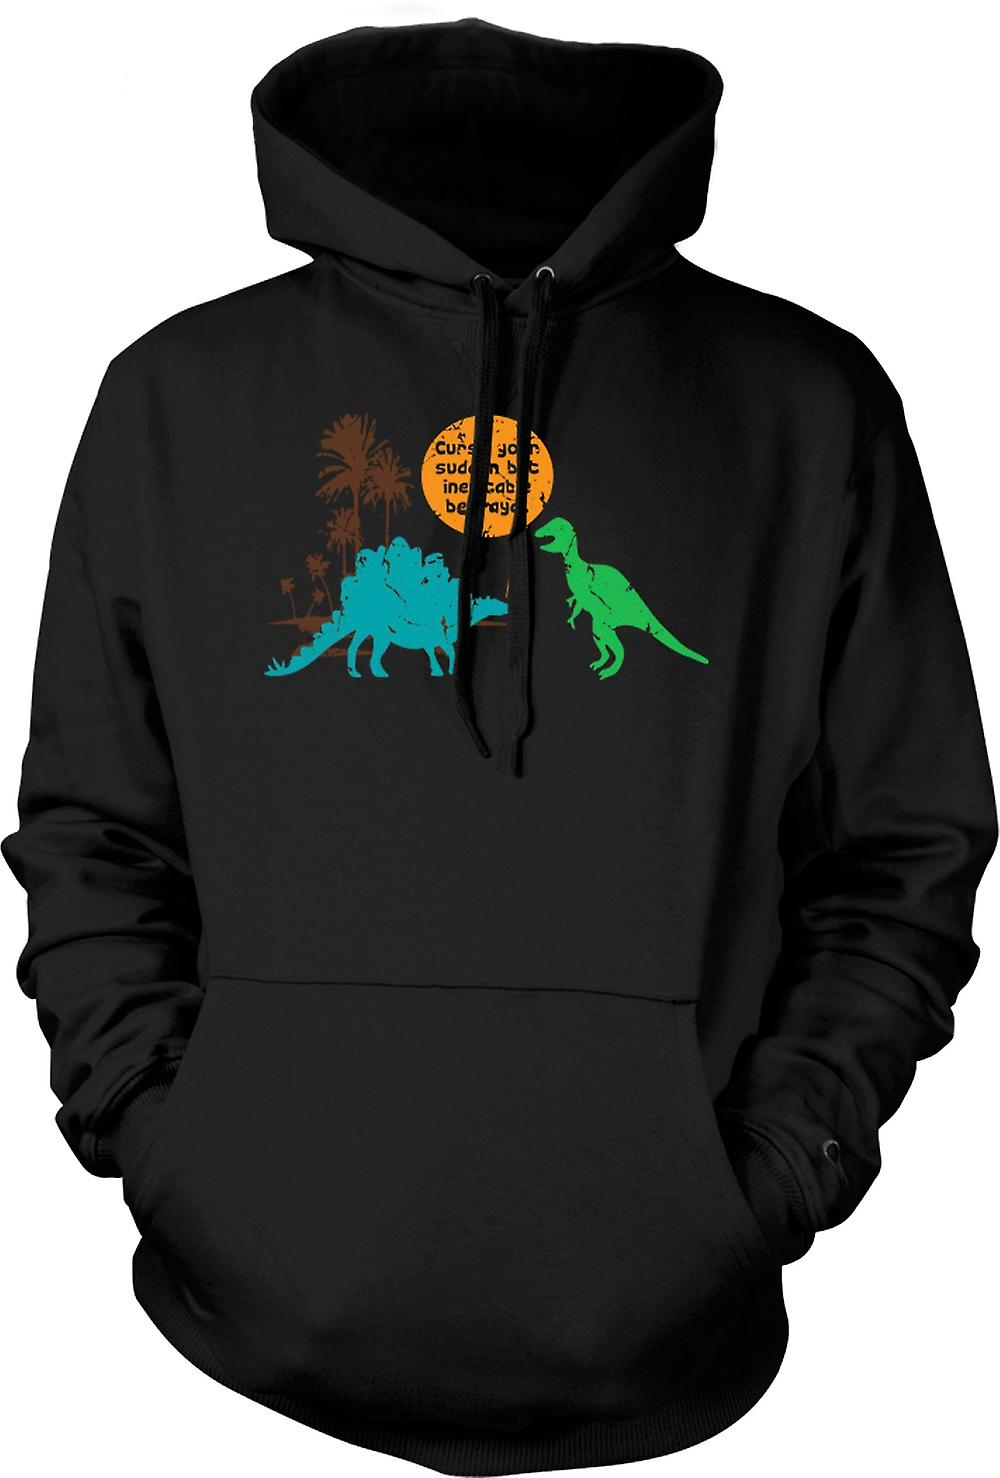 Mens Hoodie - Curse Your Sudden But Inevitable Betrayl